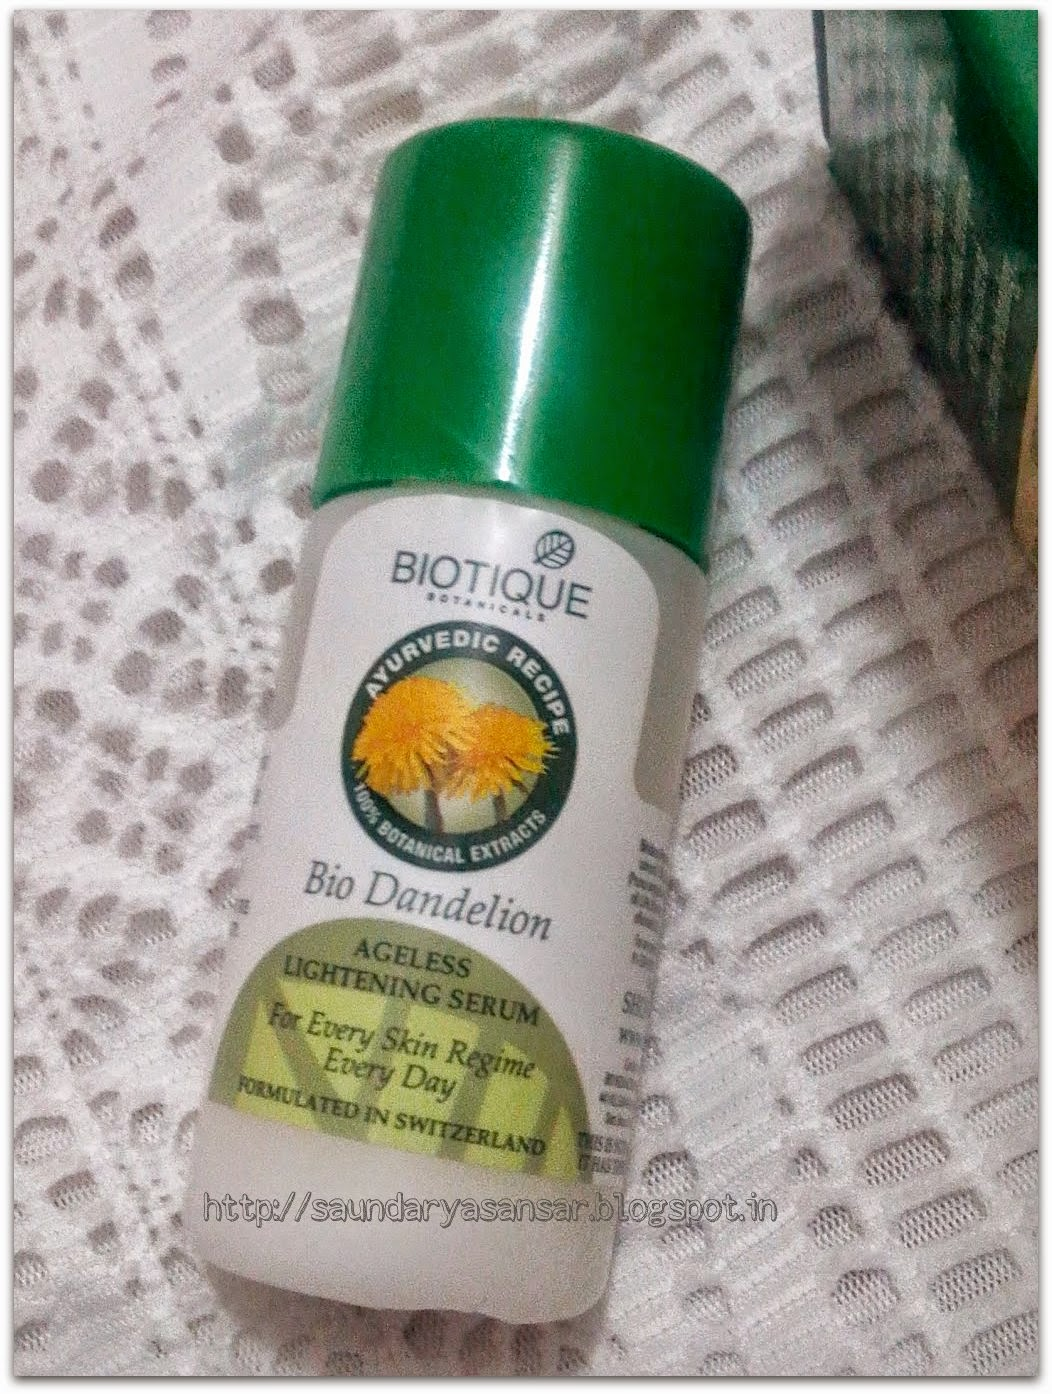 Biotique Botanicals Bio Dandelion Ageless Lightening Serum bottle, review